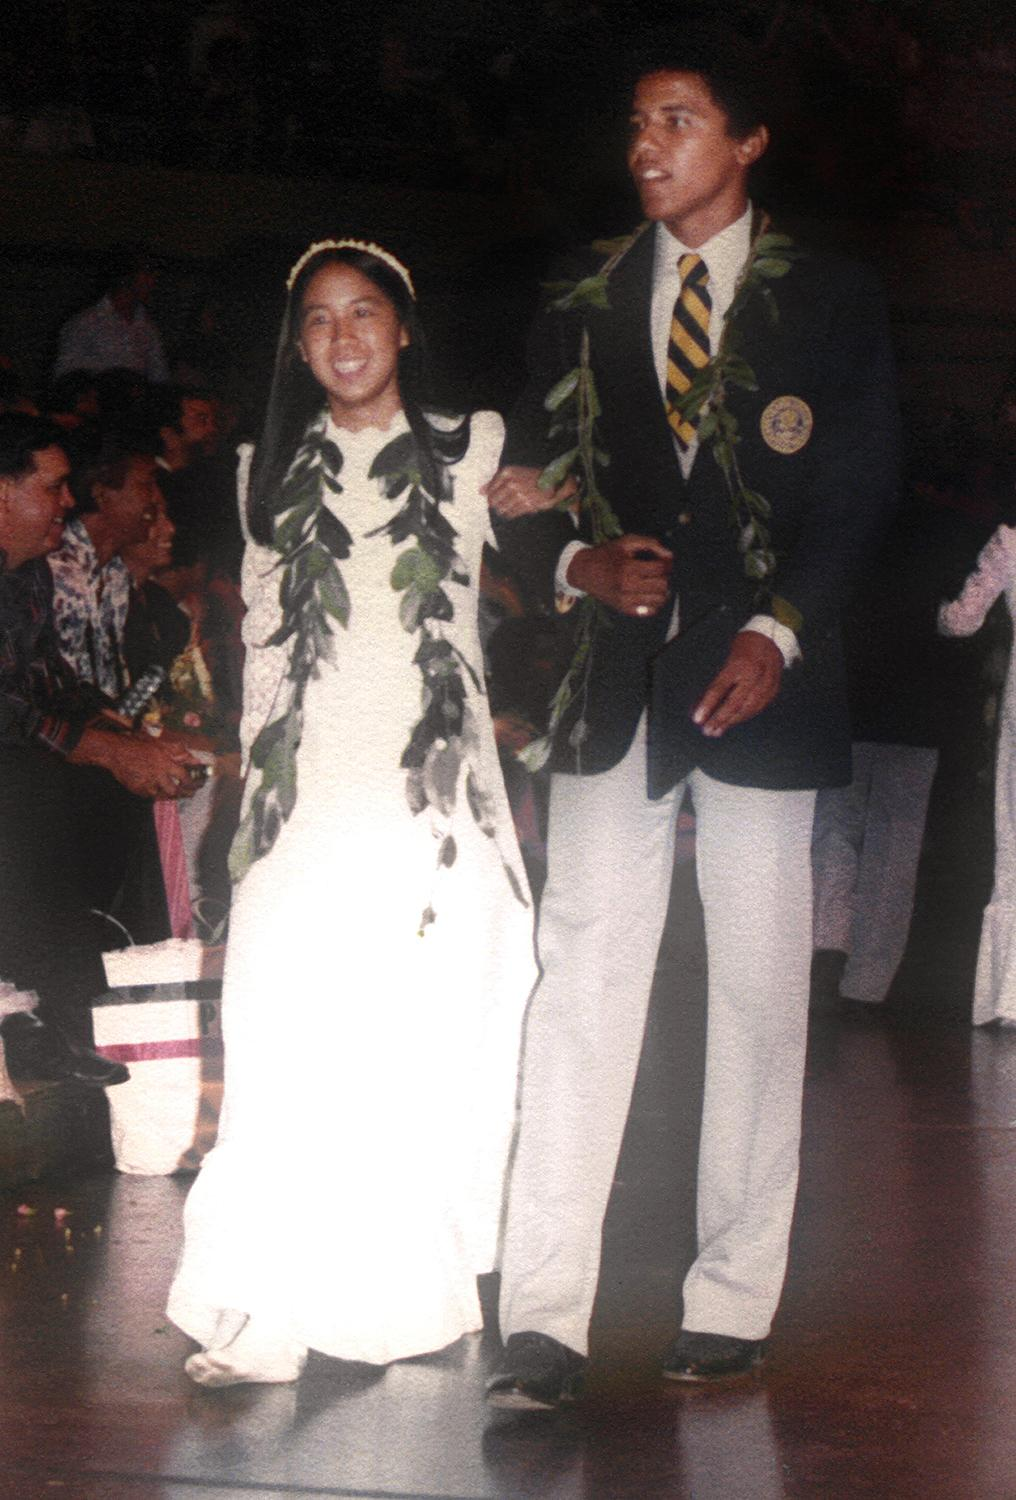 <p>In 1979, a young Barack Obama escorted a classmate during the graduation ceremony at Punahou School in Honolulu, Hawaii. </p>